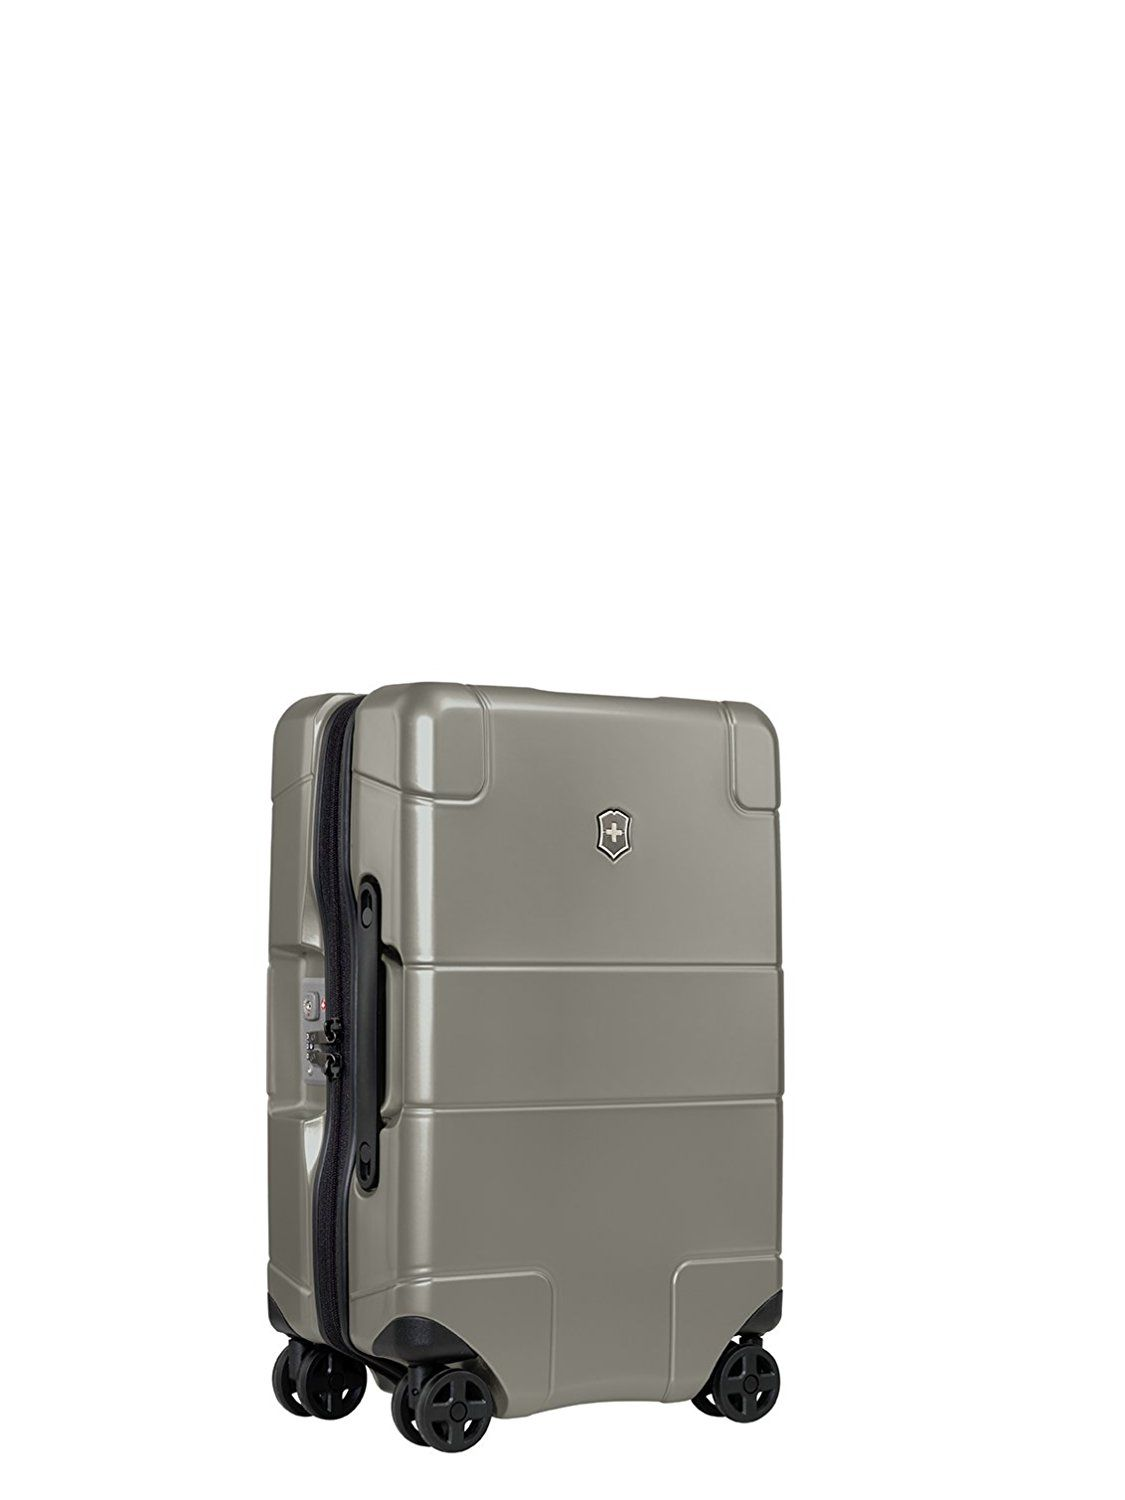 8 Best Smart Luggage Products for Traveling in 2018 - Smart Suitcase & Luggage Tracker Reviews